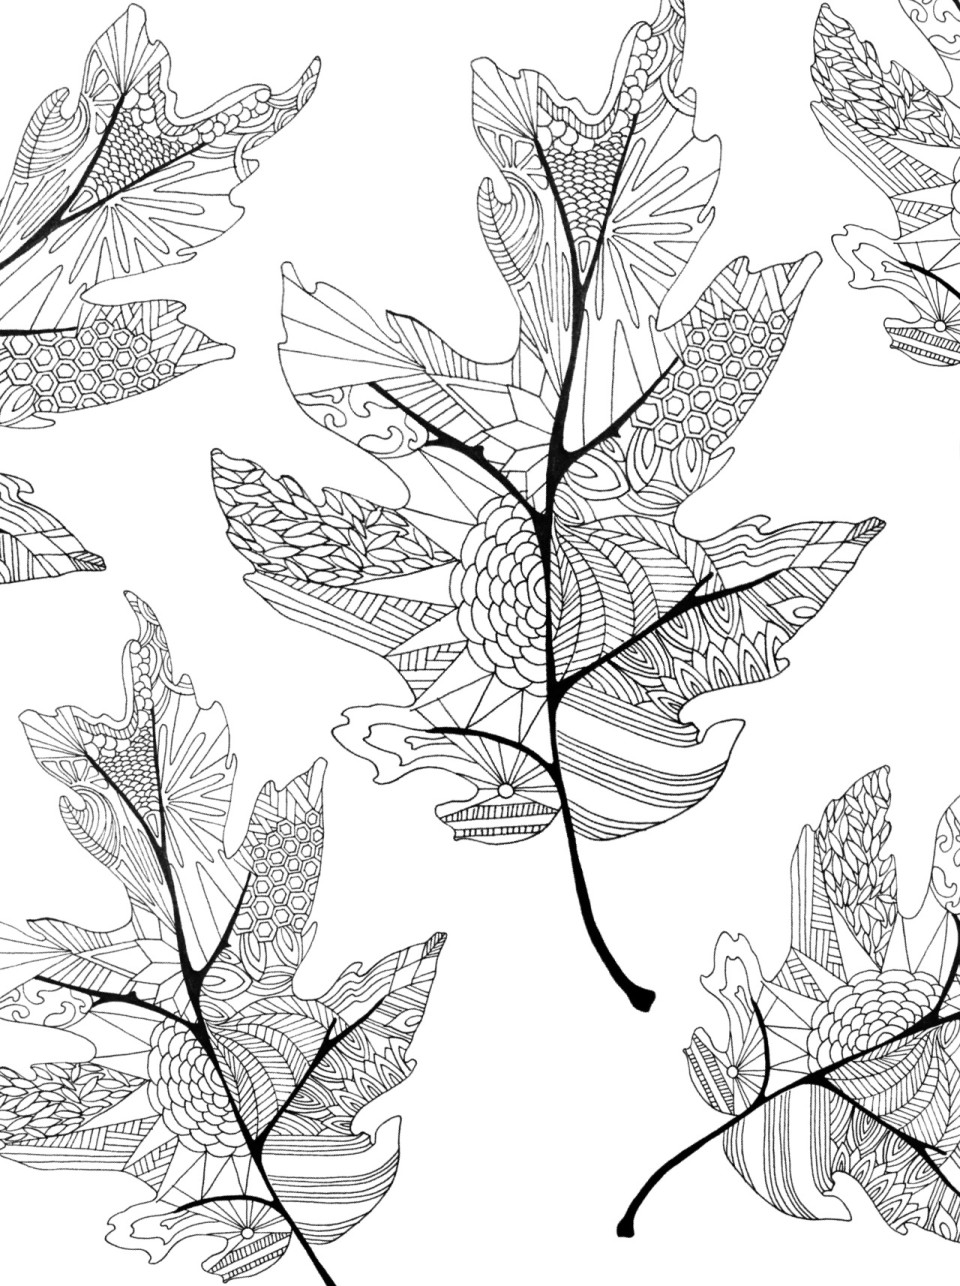 Coloring pages twineandtable for Coloring pages autumn leaves